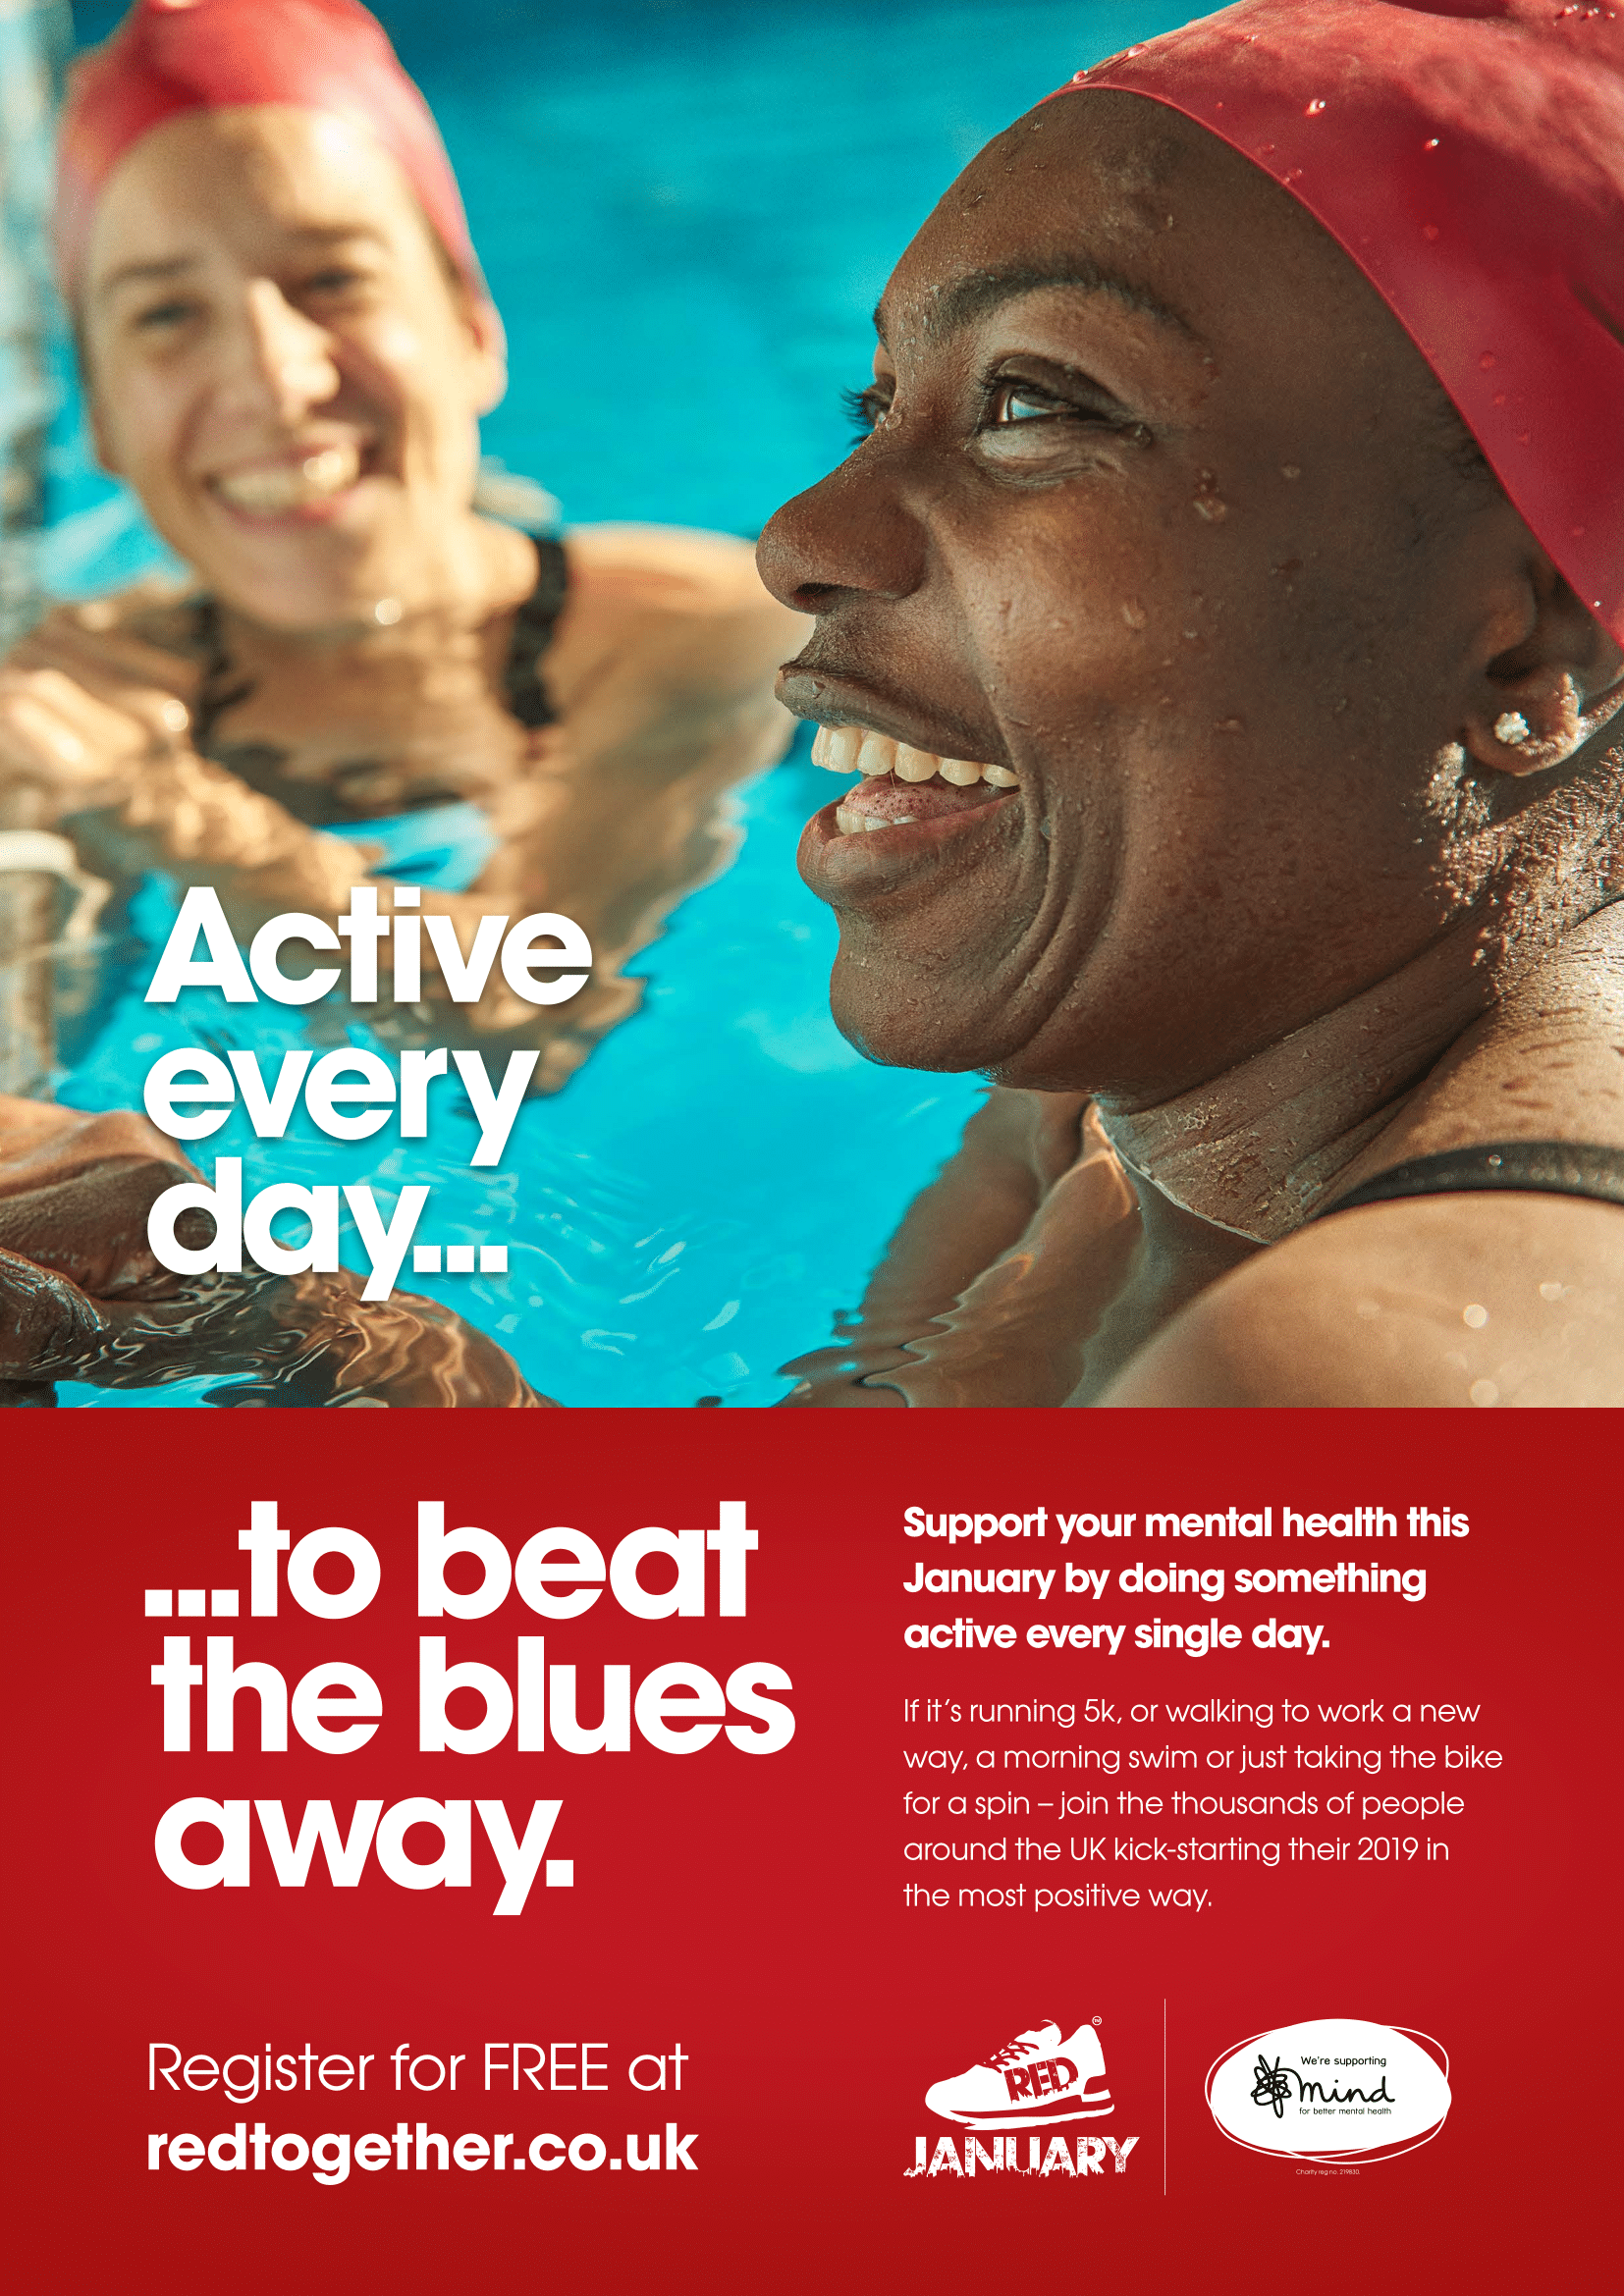 RED January Poster - I'm getting active every day, to beat the blues away.